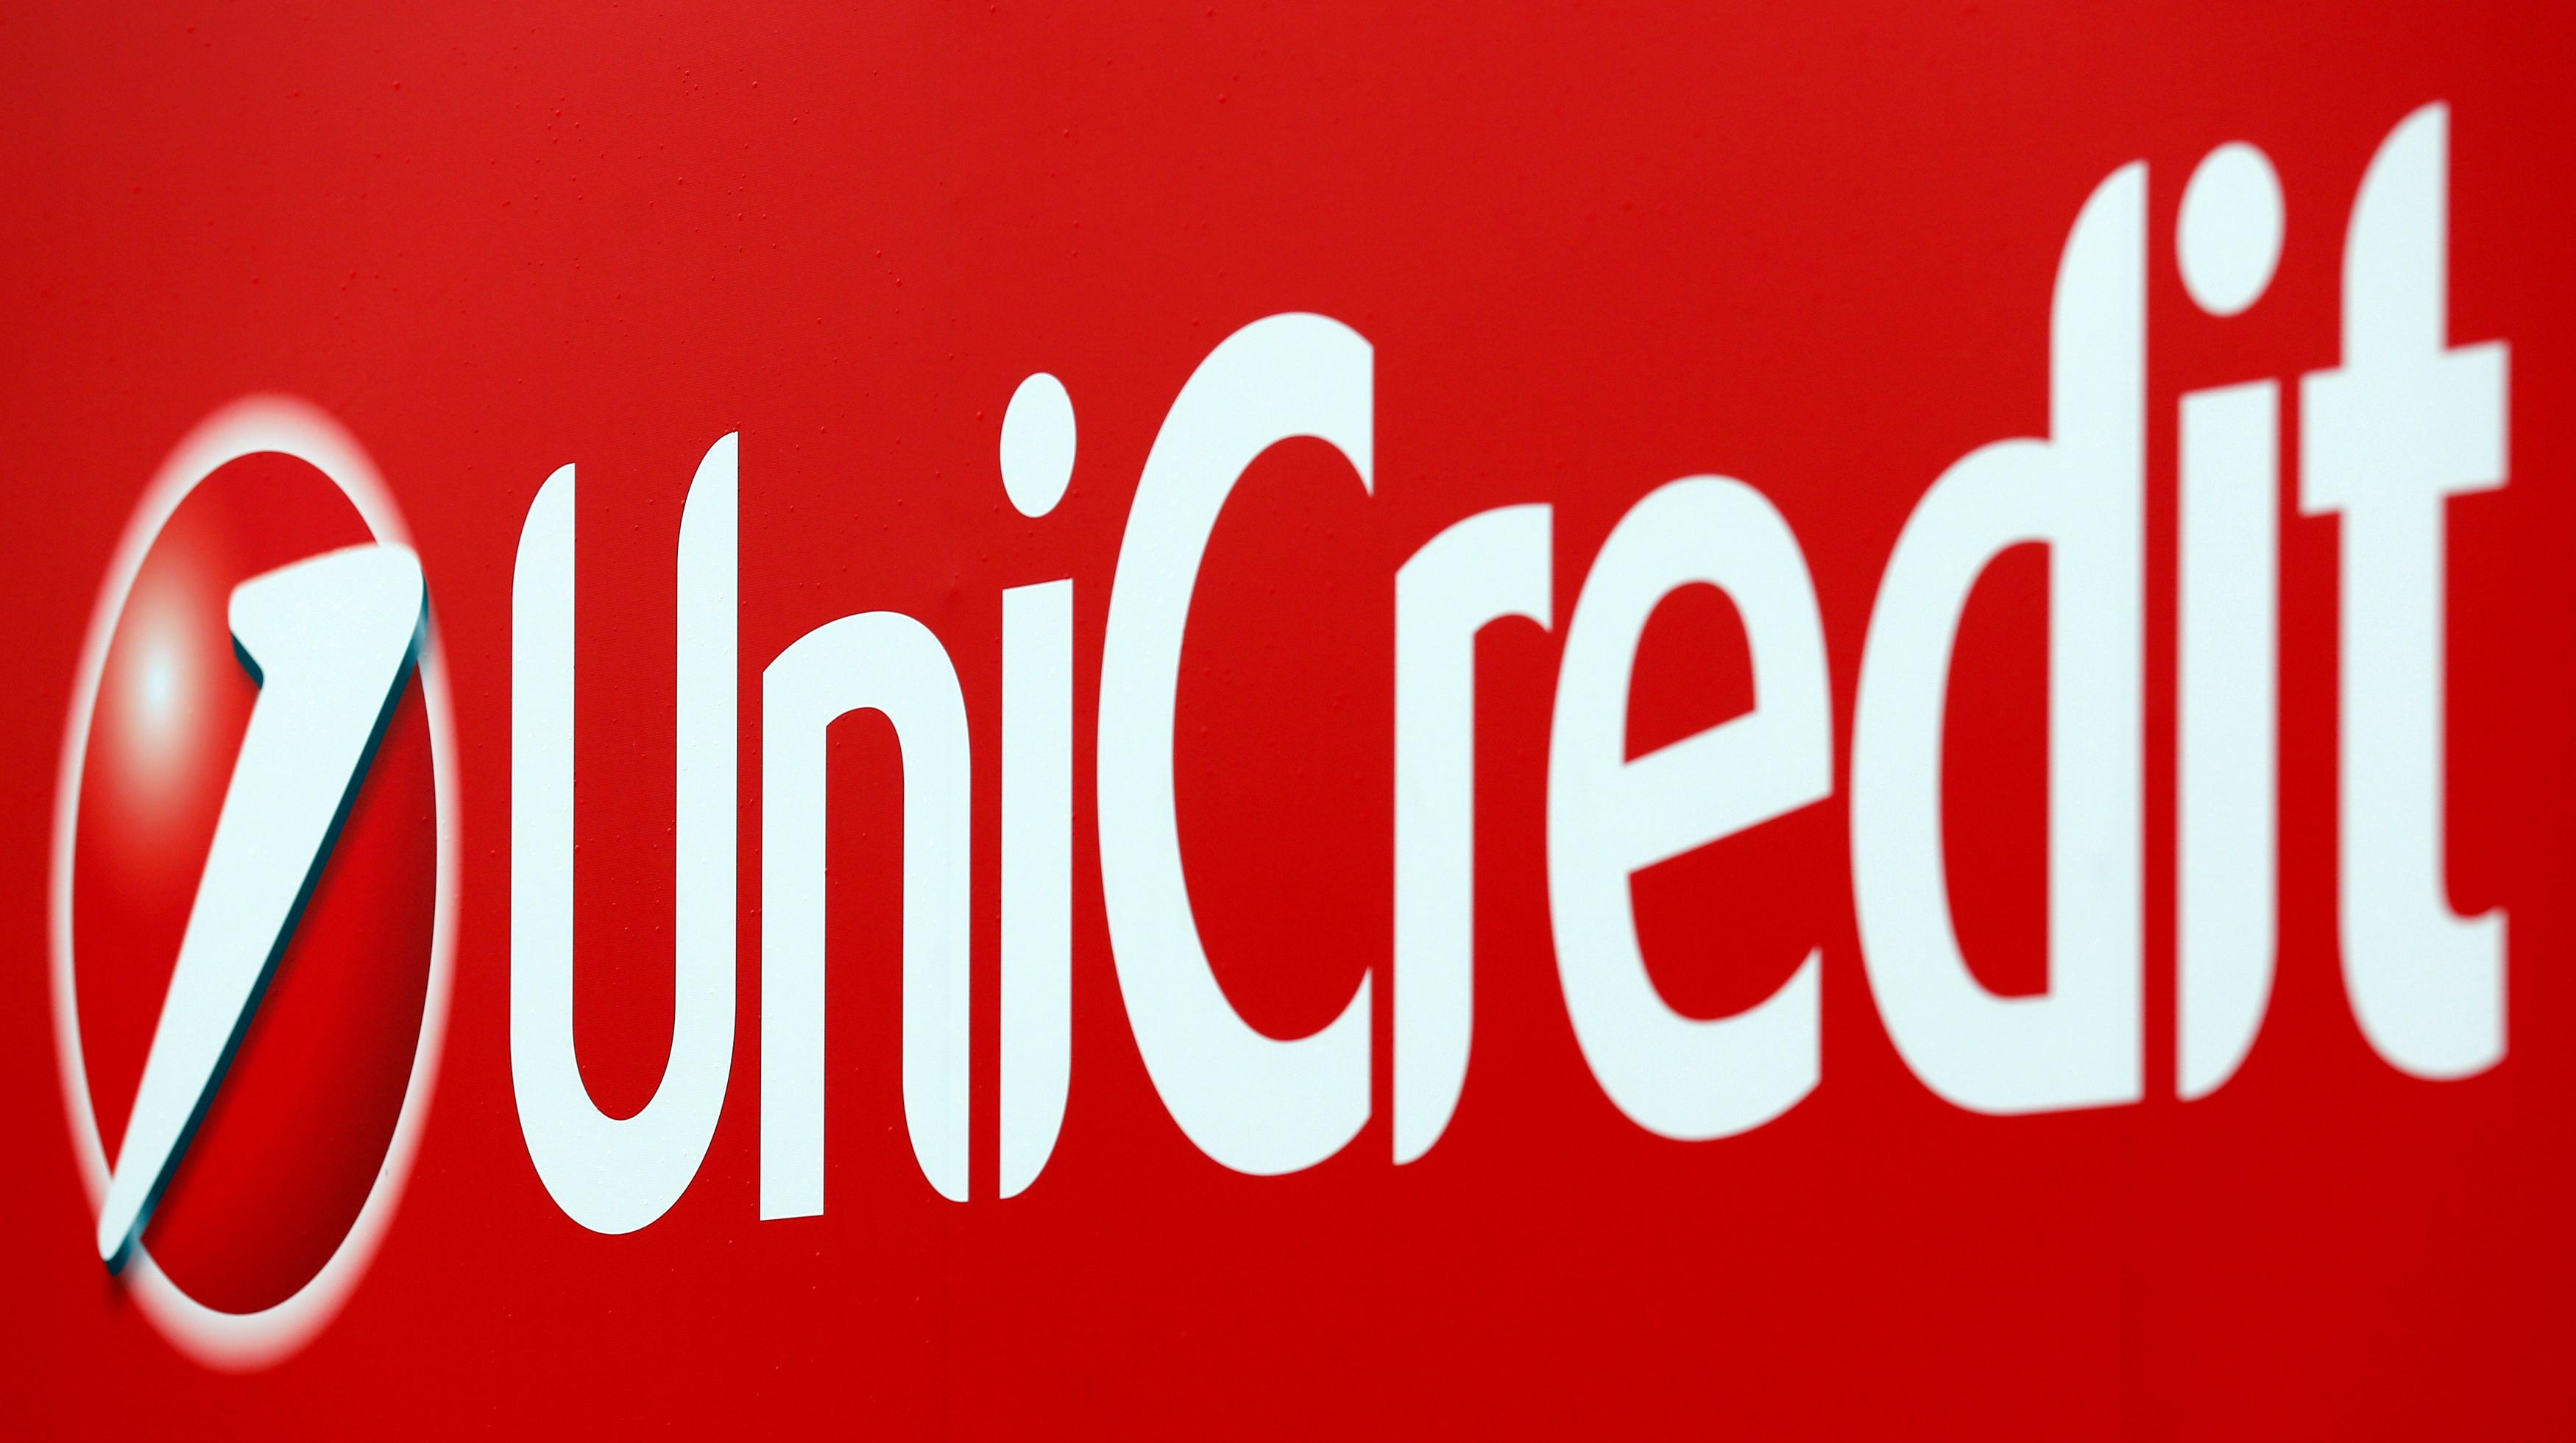 UniCredit could cut around 10,000 jobs under new plan: sources